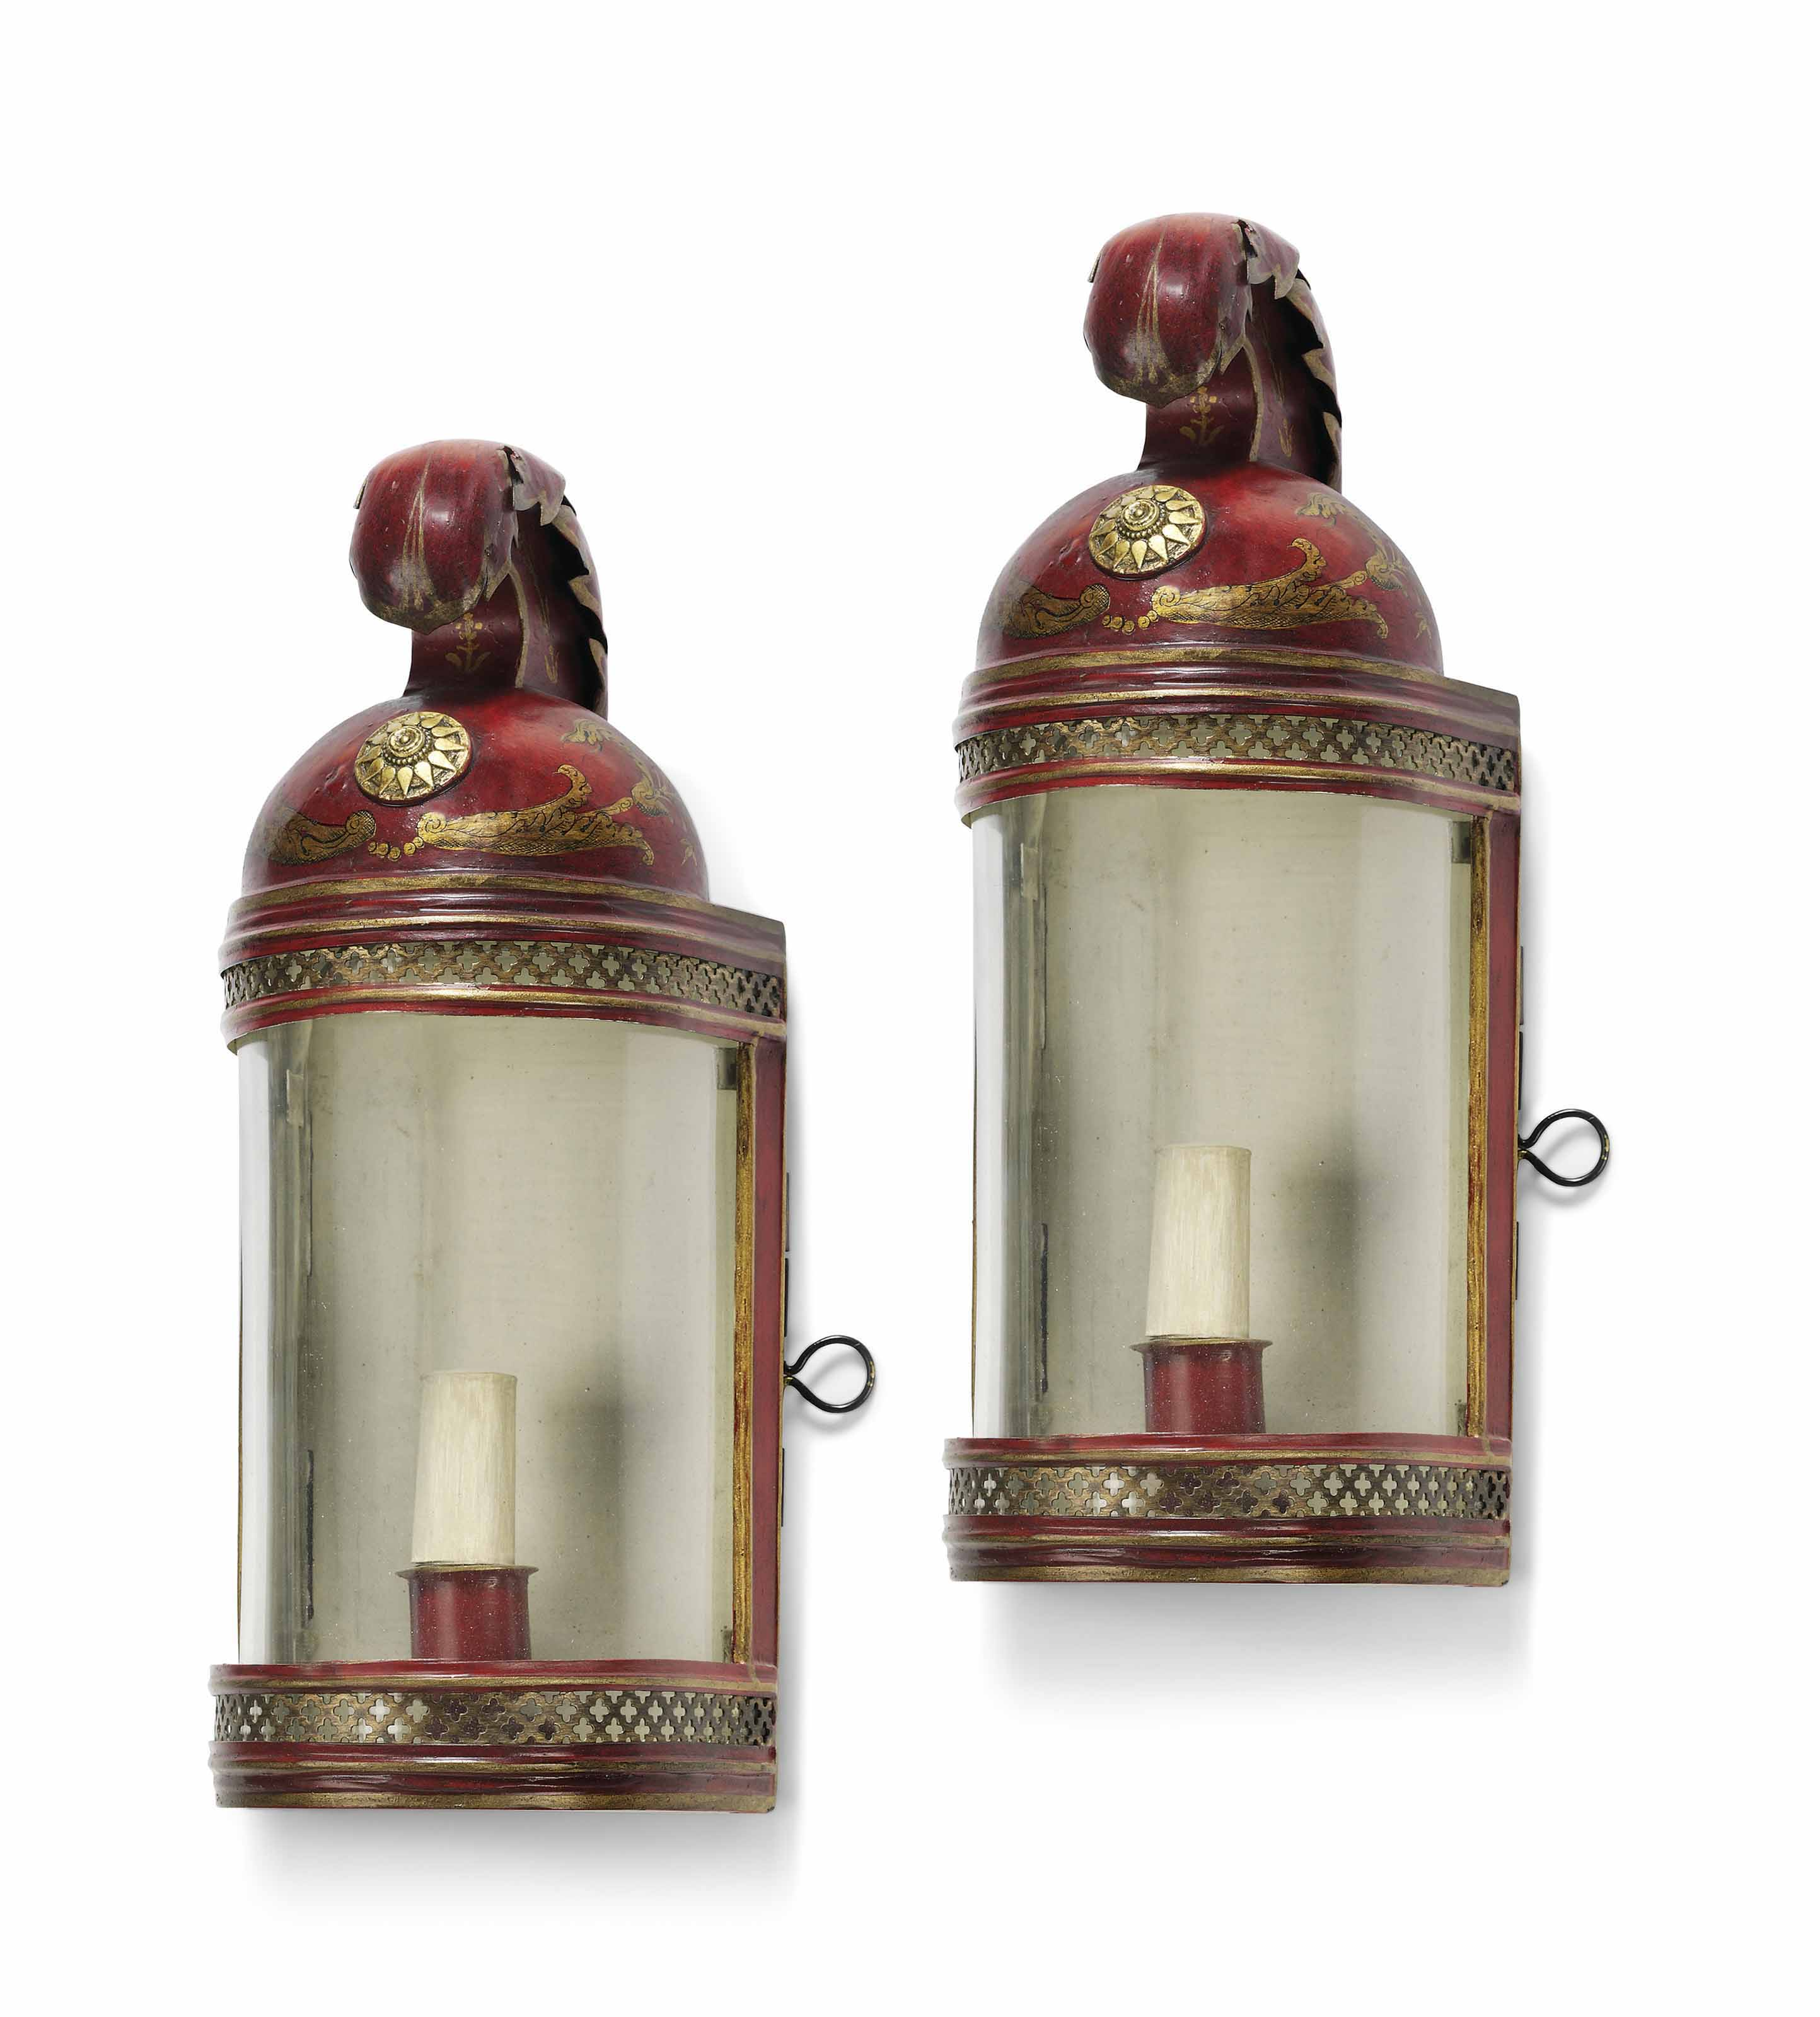 A PAIR OF RED AND GILT-PAINTED TOLE HELMET-SHAPED WALL LANTERNS